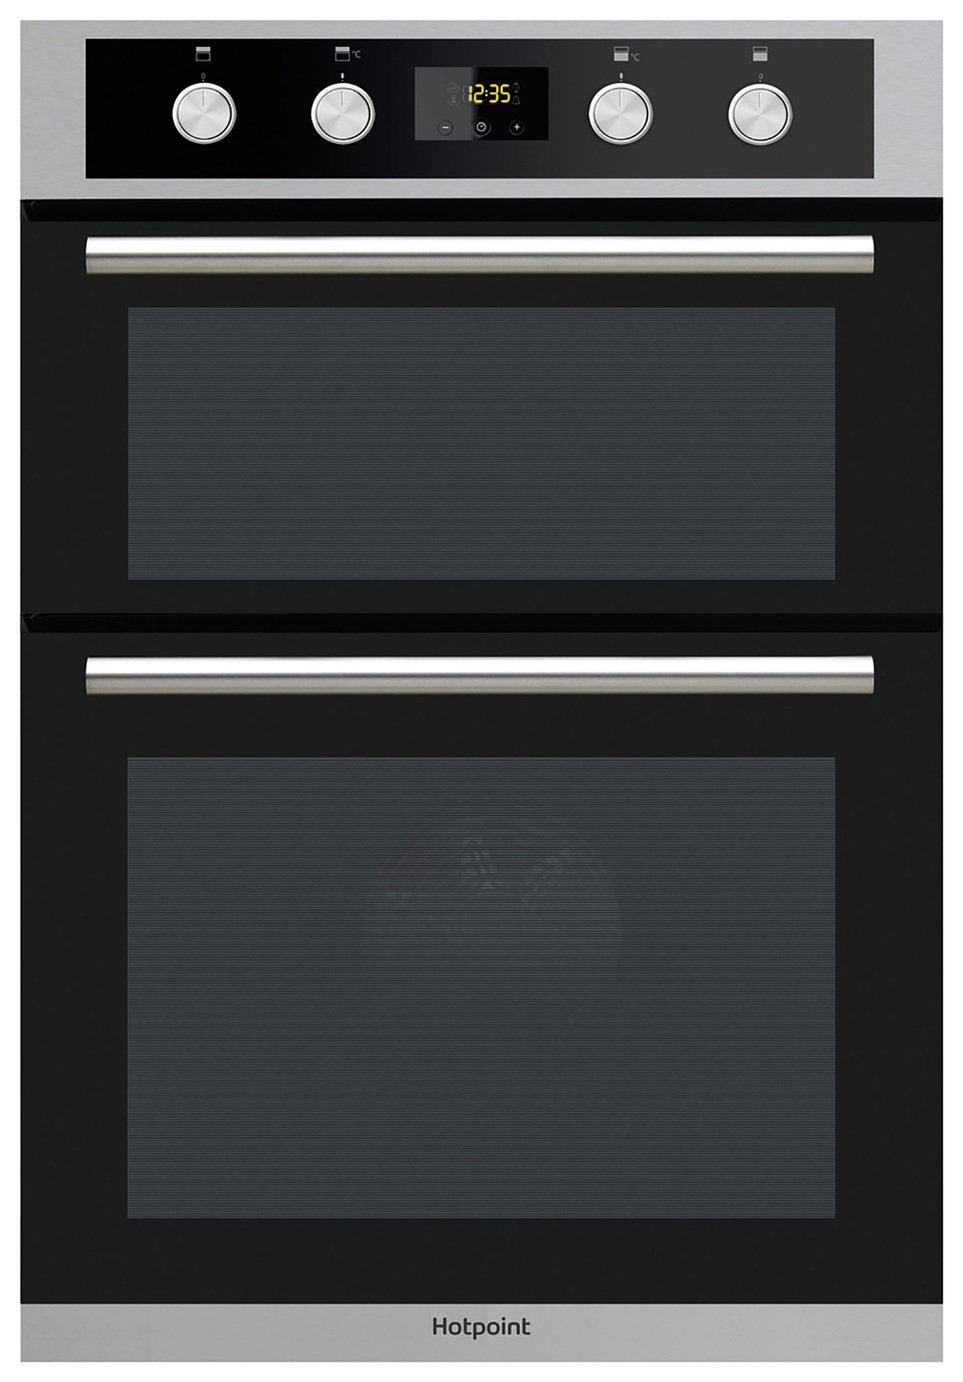 Hotpoint DD2844CIX Built-in Electric Double Oven - S/ Steel from Hotpoint